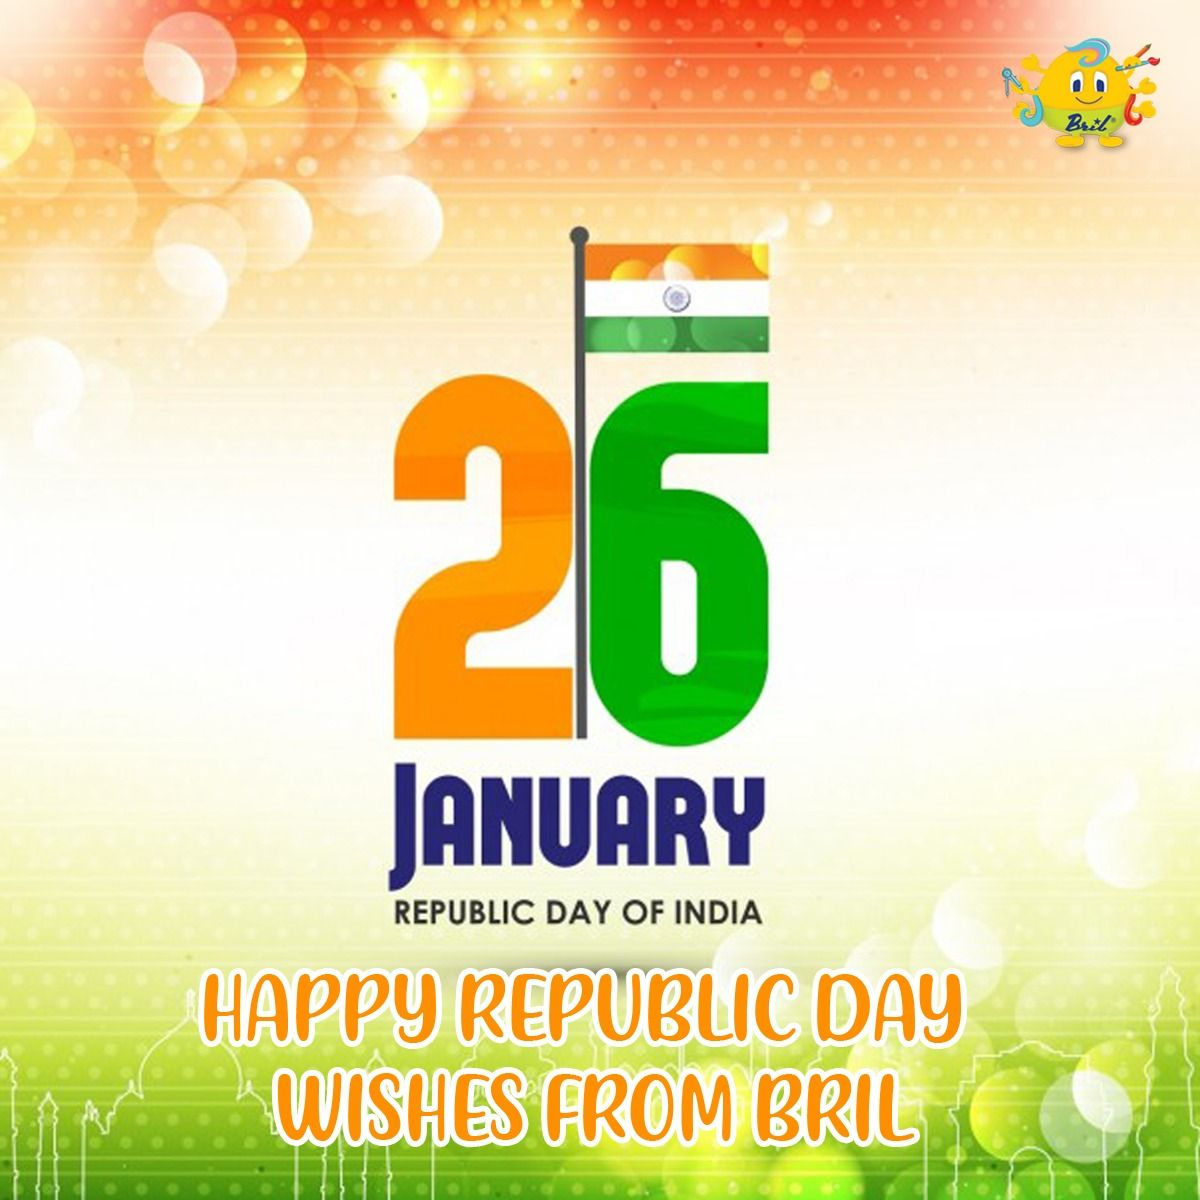 Bril Wishes You A Very Happy Republic Day Republic Day Images Republic Day Happy Republic Day